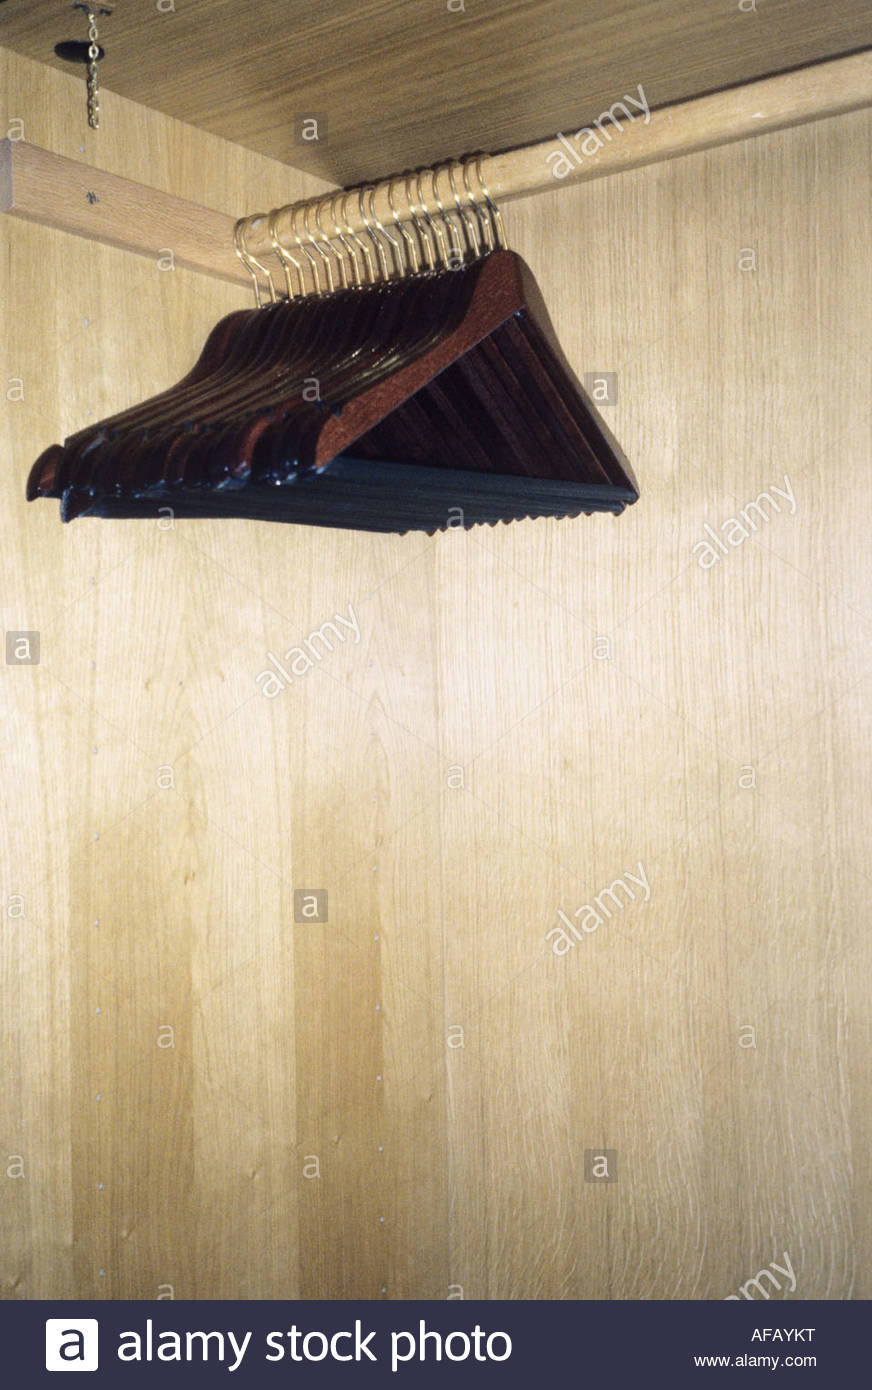 Clothes rail with coat hangers - Stock Image